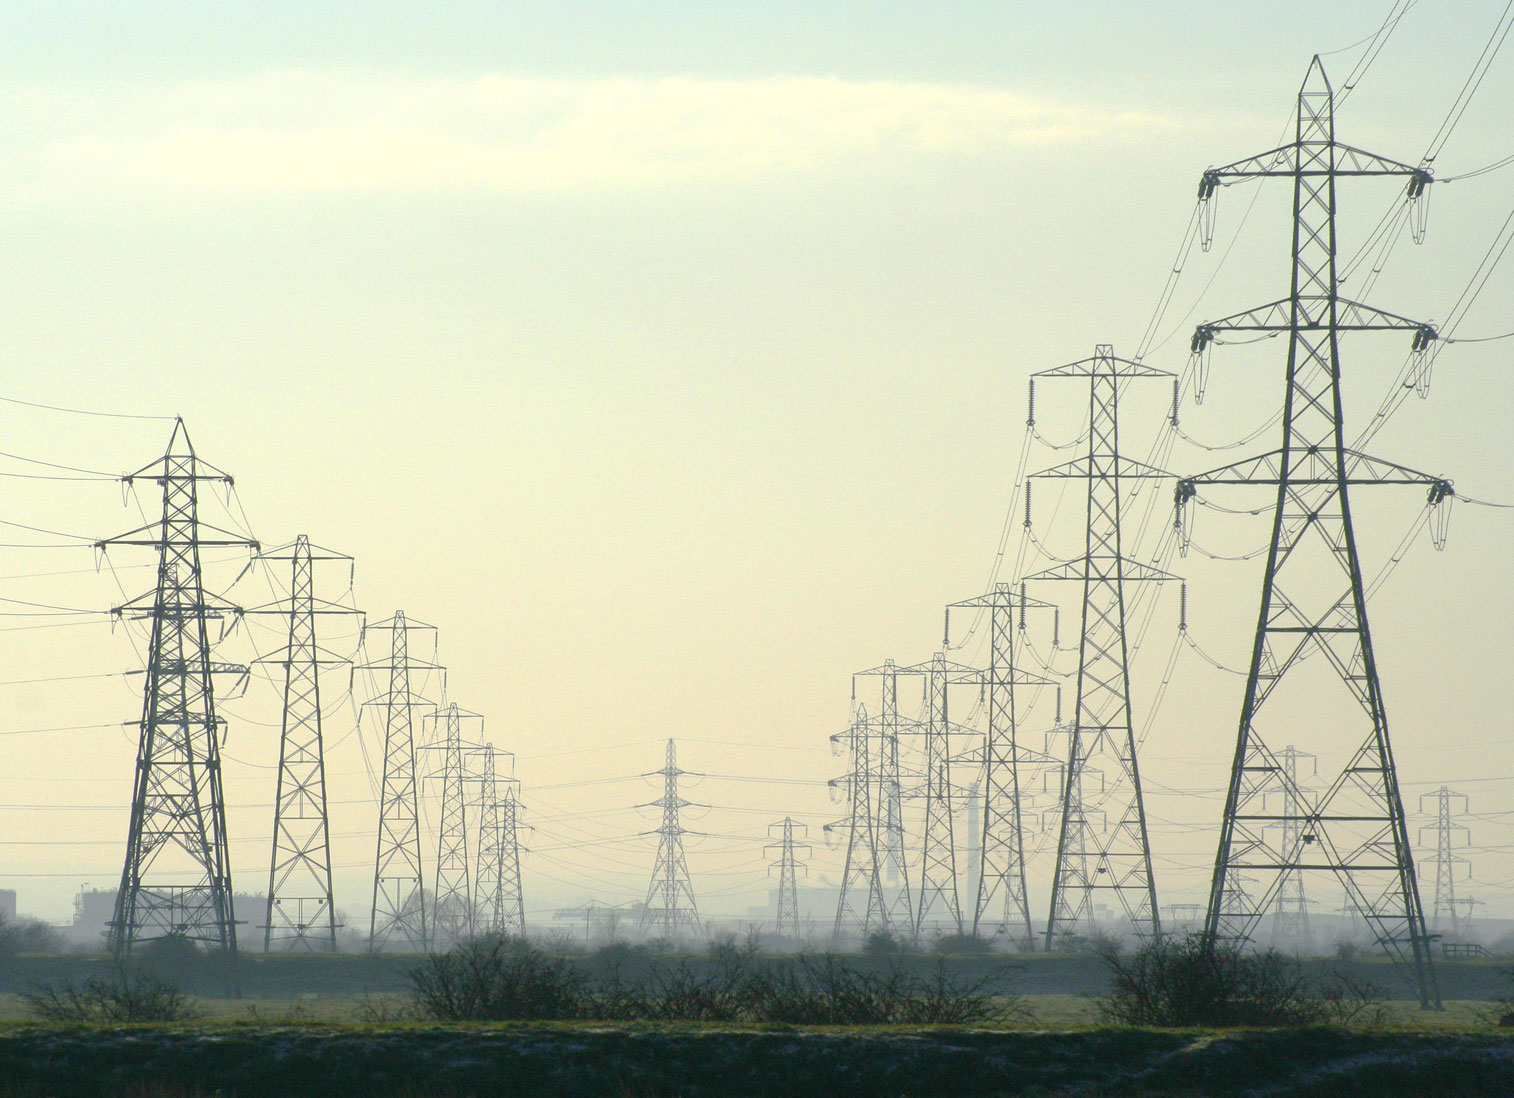 With Energy Law Federalism Under Construction, State Policymaking May Be Delayed